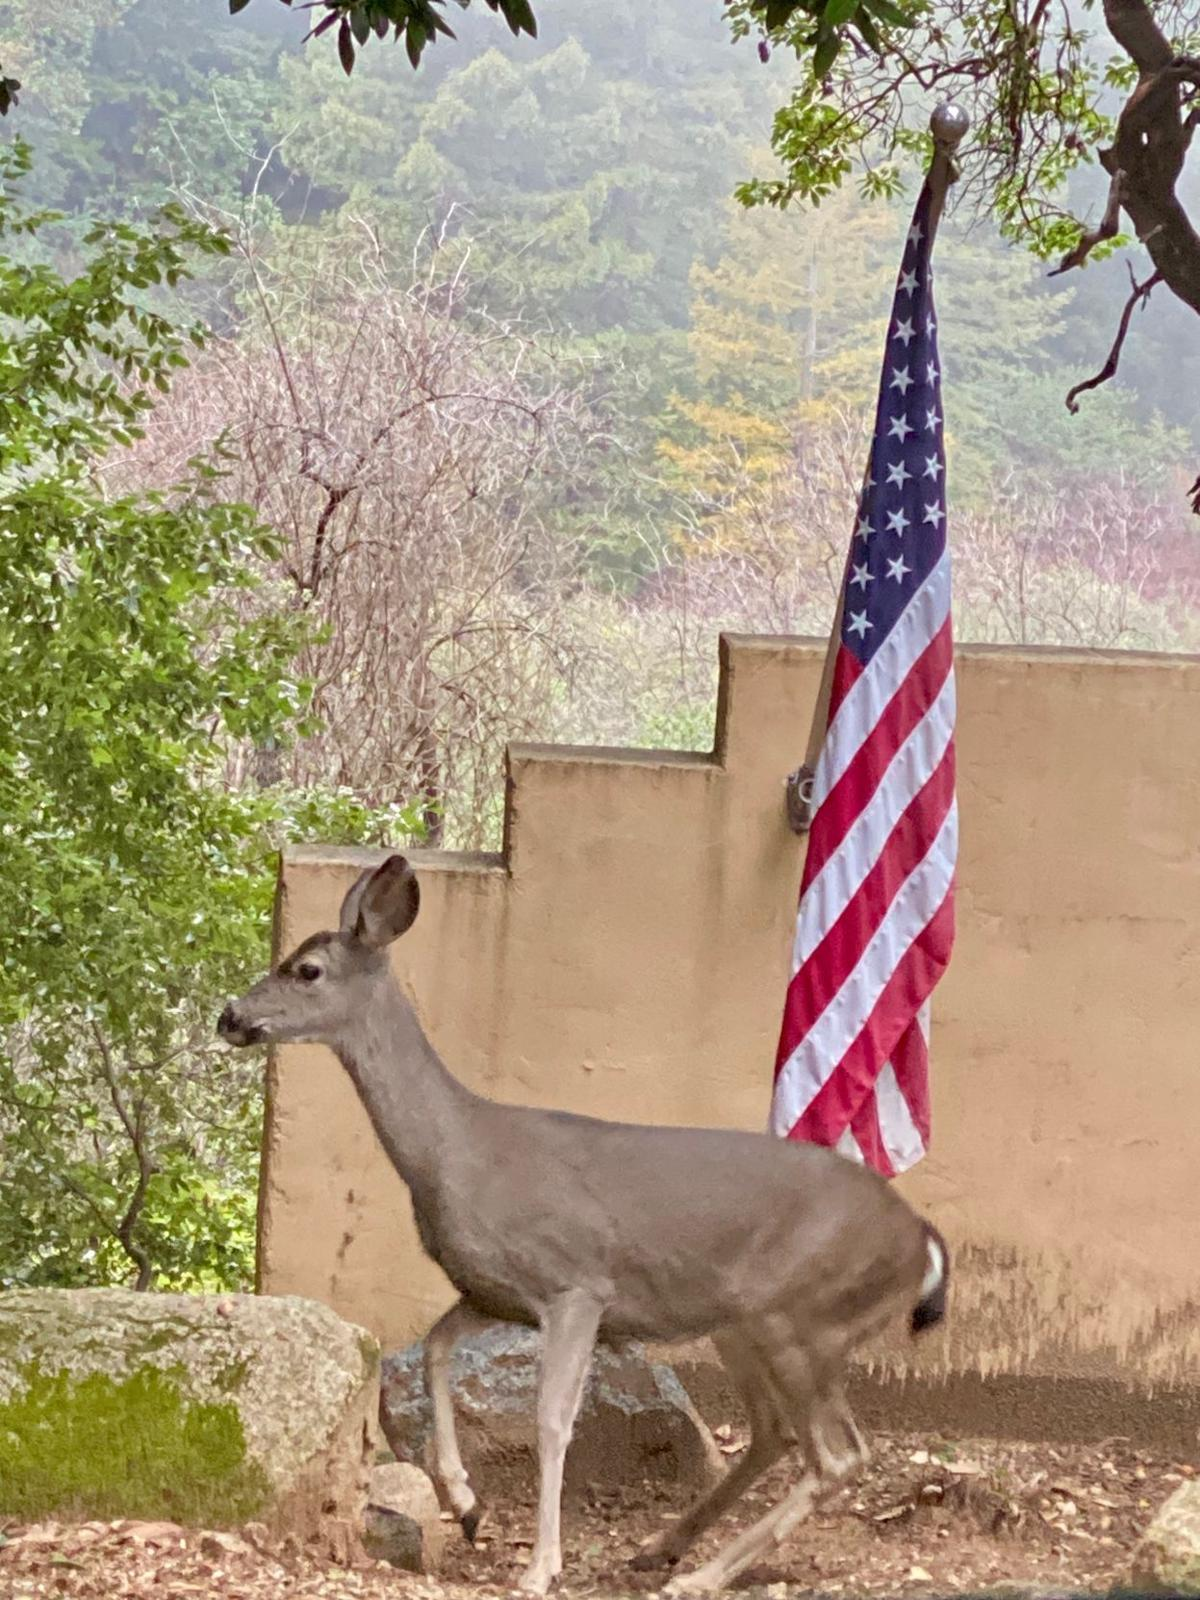 A local black-tailed deer celebrating Fourth of July